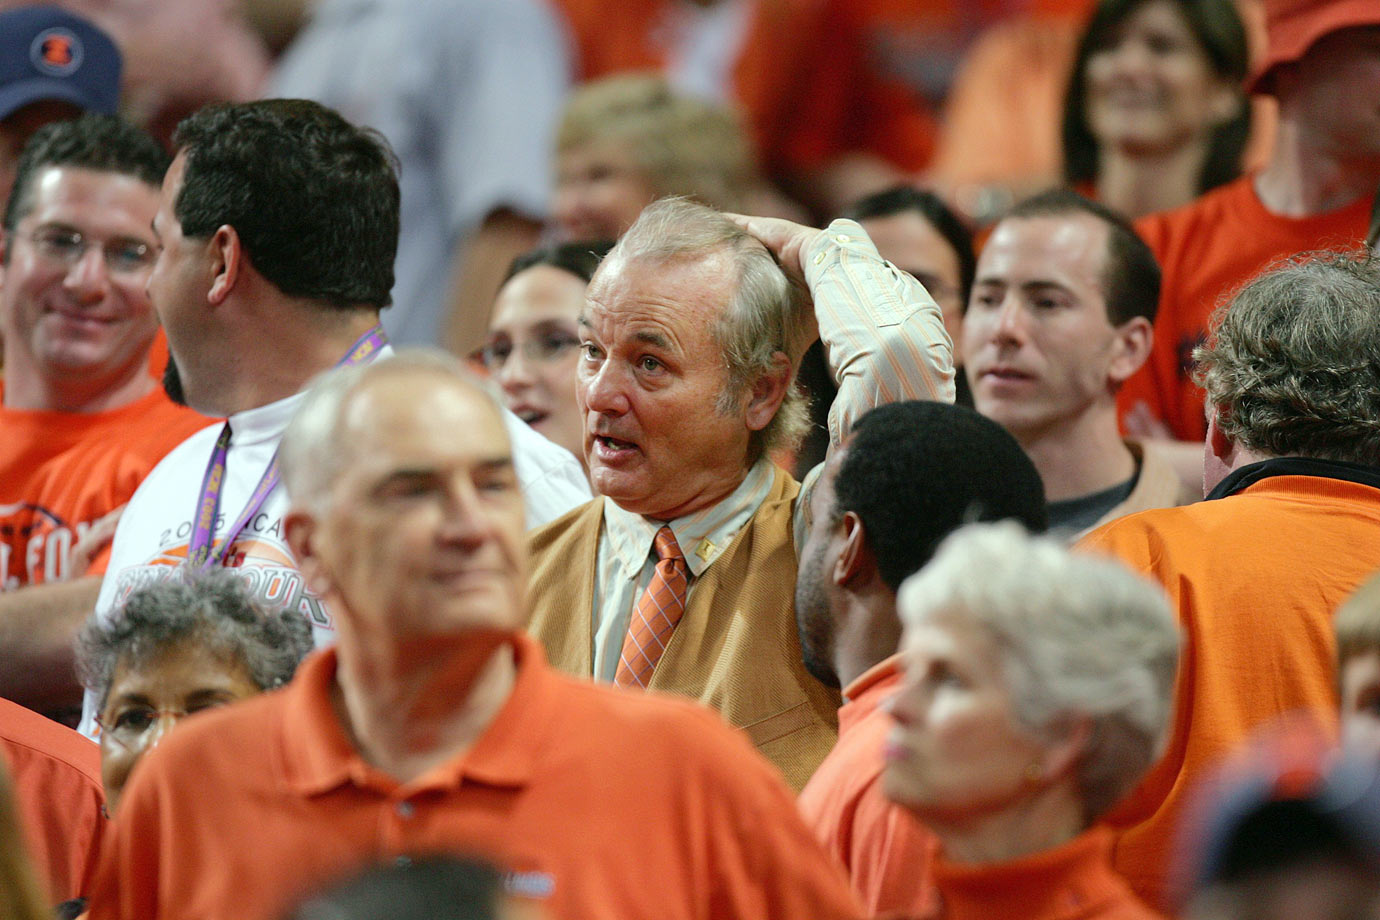 Bill Murray reacts during the Illinois Fighting Illini's 75-70 loss to the North Carolina Tar Heels in the NCAA Men's National Championship Game on April 4, 2005 at the Edward Jones Dome in St. Louis.